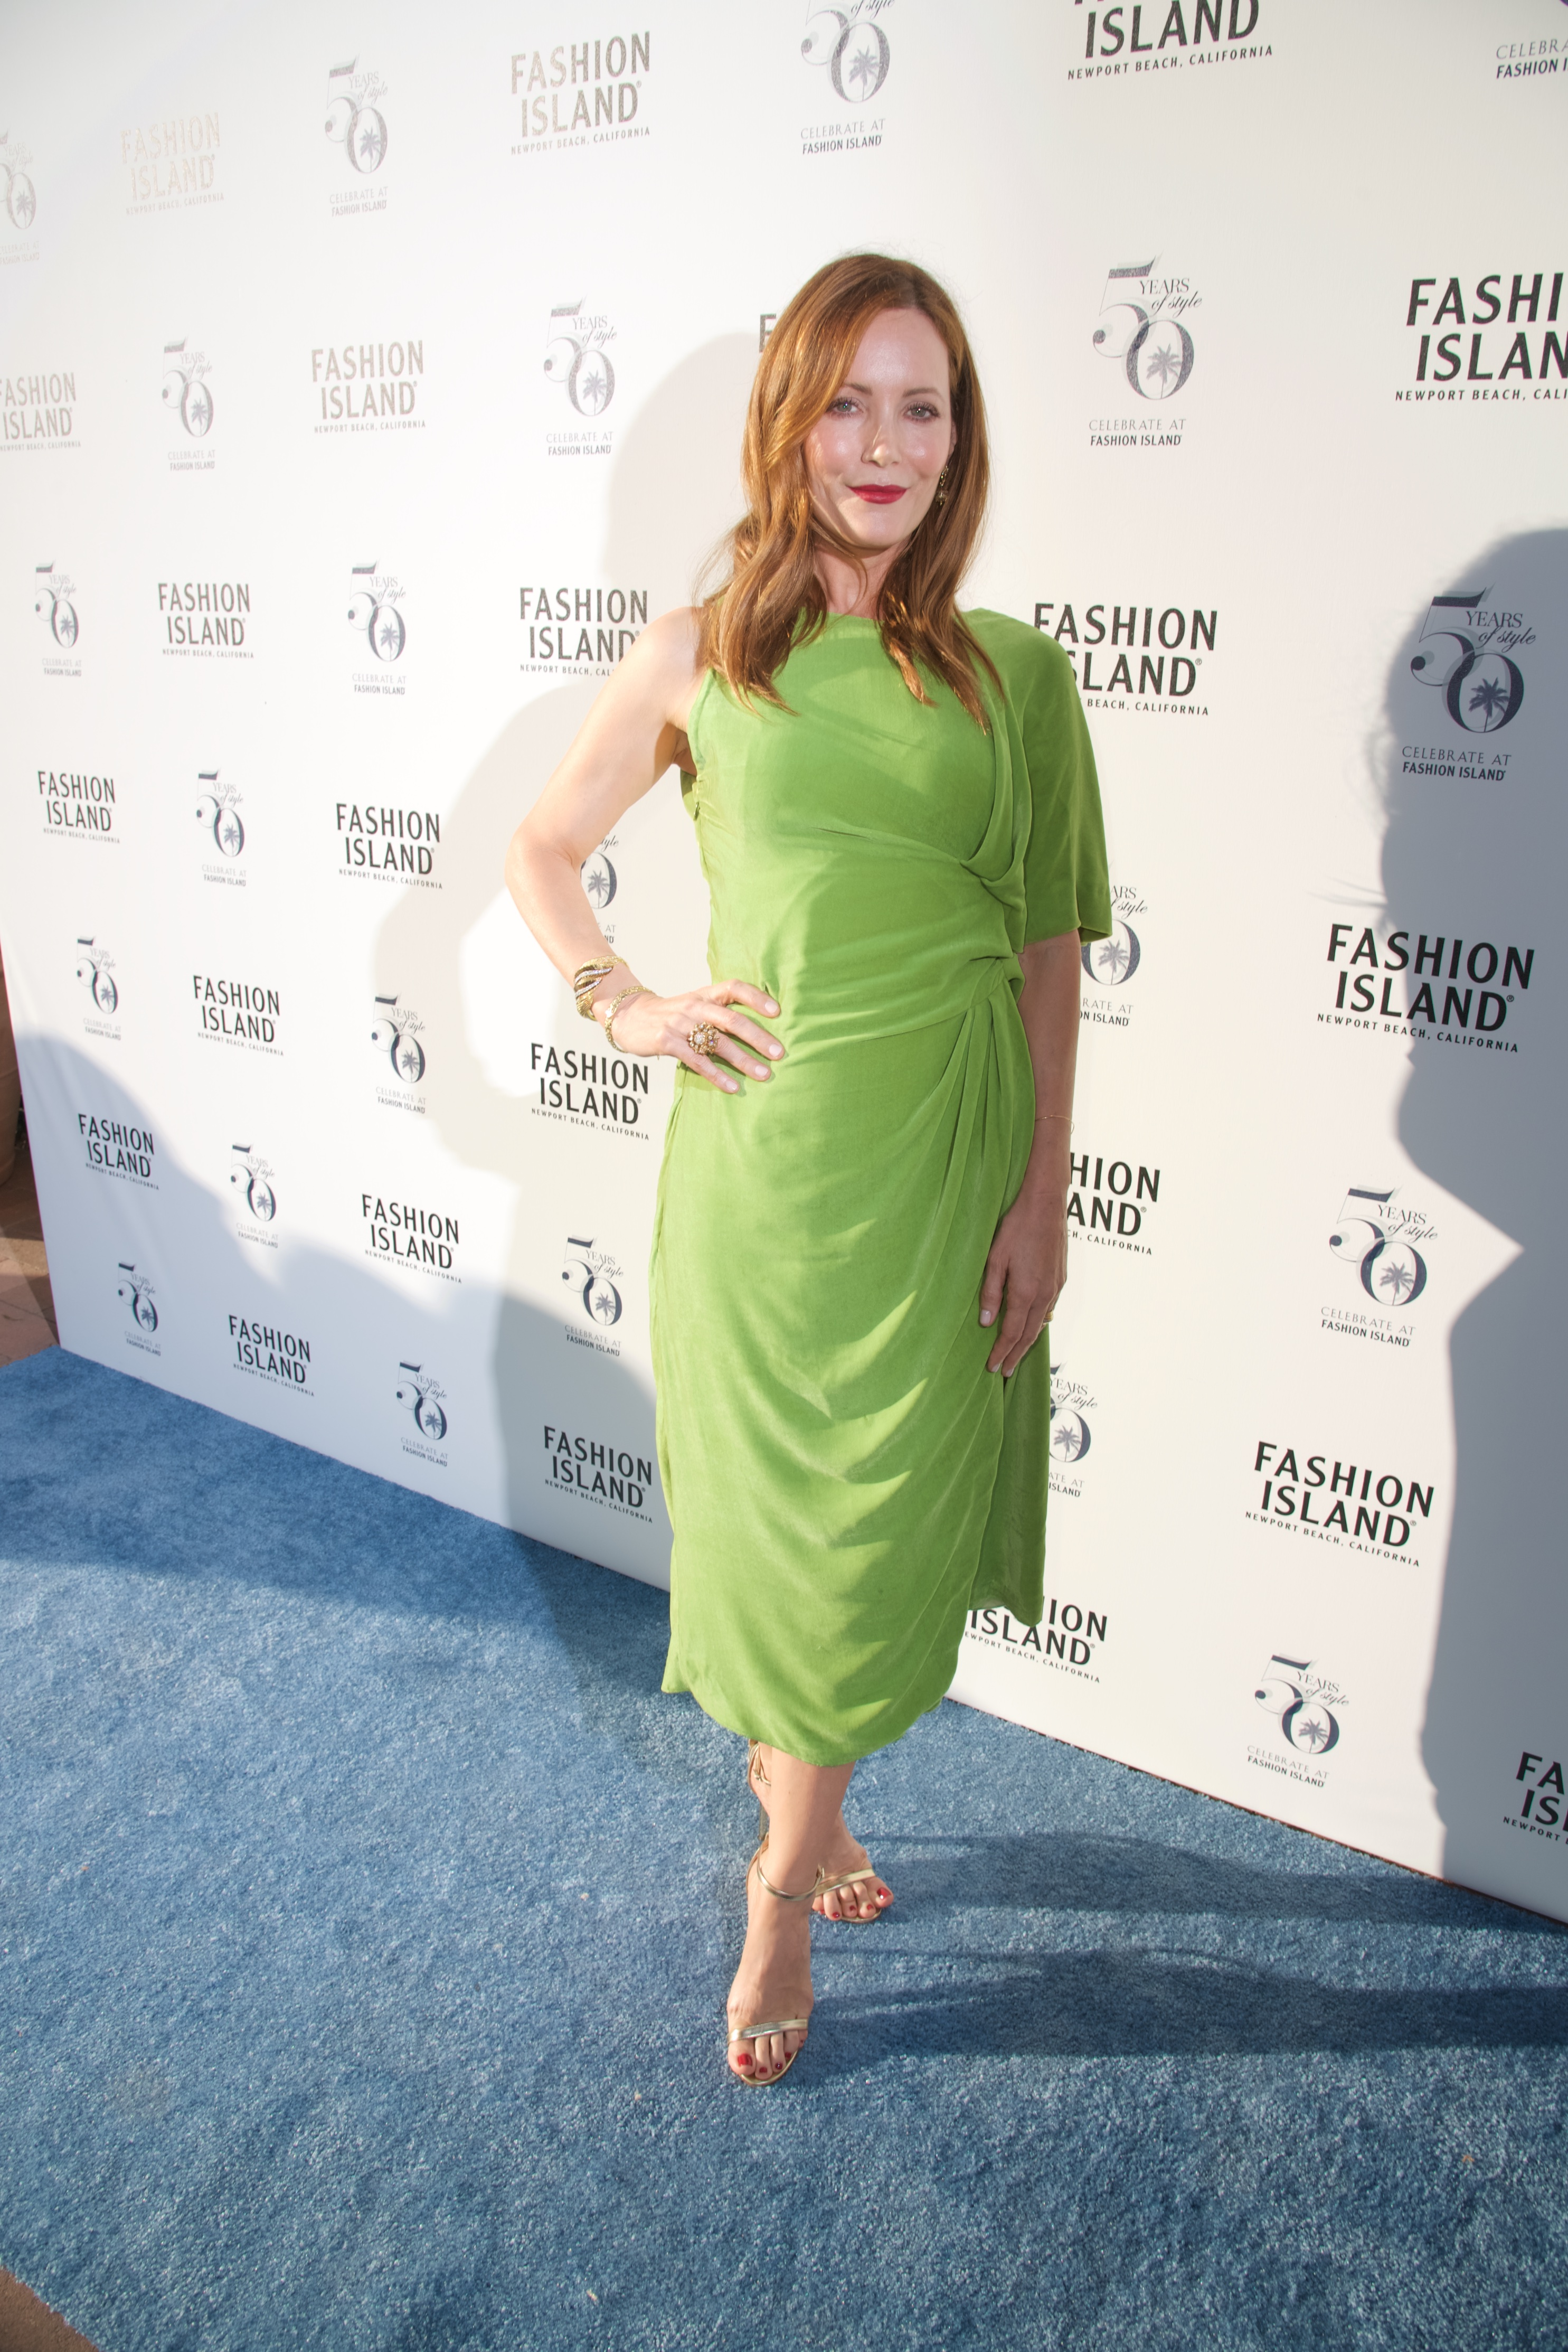 Los Angeles Confidential Celebrates Fashion Island's 50th Anniversary with Cover Star Leslie Mann